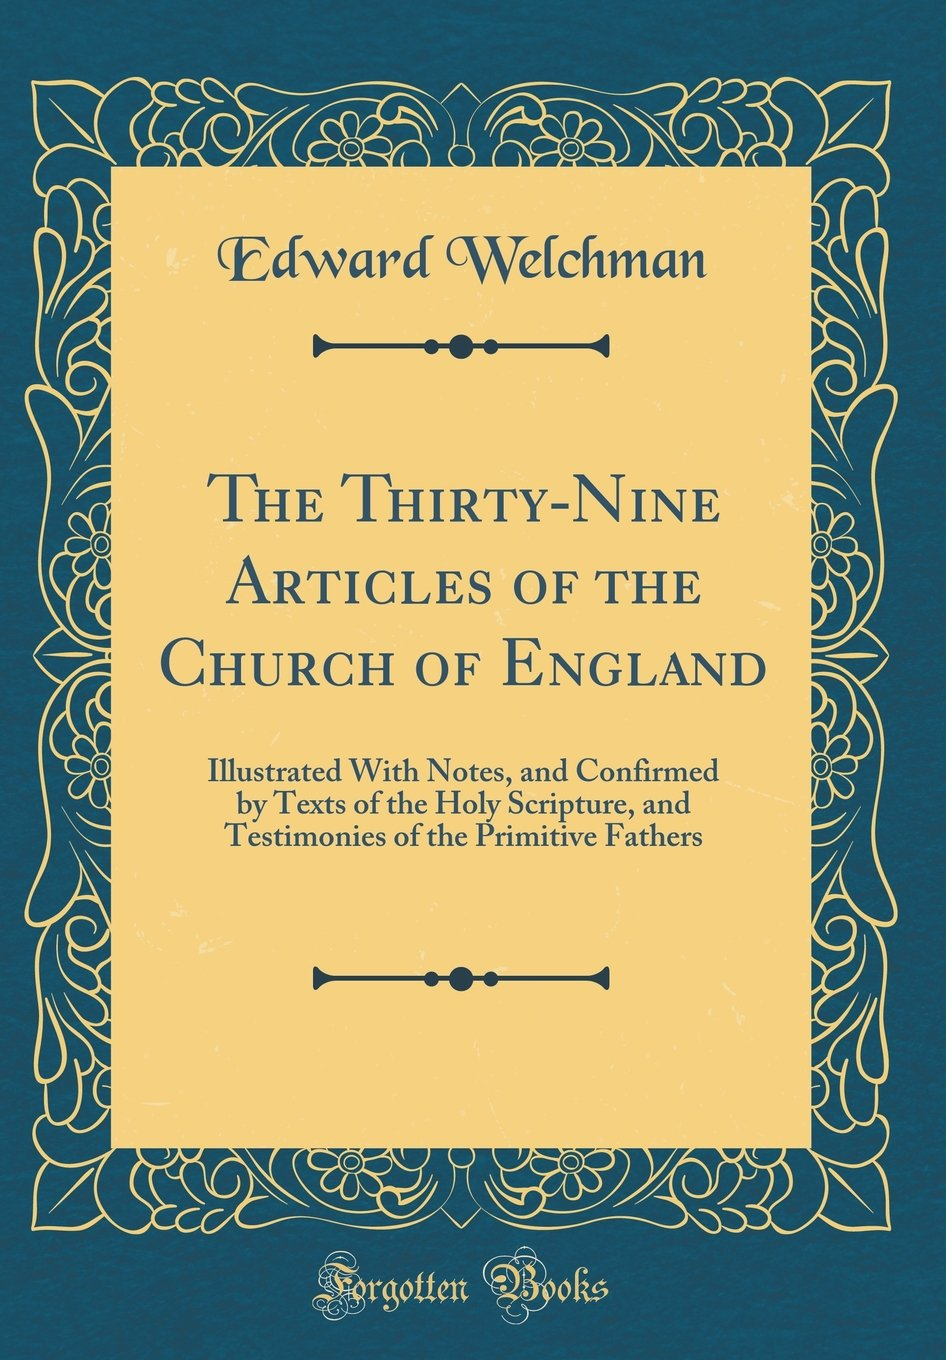 Download The Thirty-Nine Articles of the Church of England: Illustrated With Notes, and Confirmed by Texts of the Holy Scripture, and Testimonies of the Primitive Fathers (Classic Reprint) pdf epub